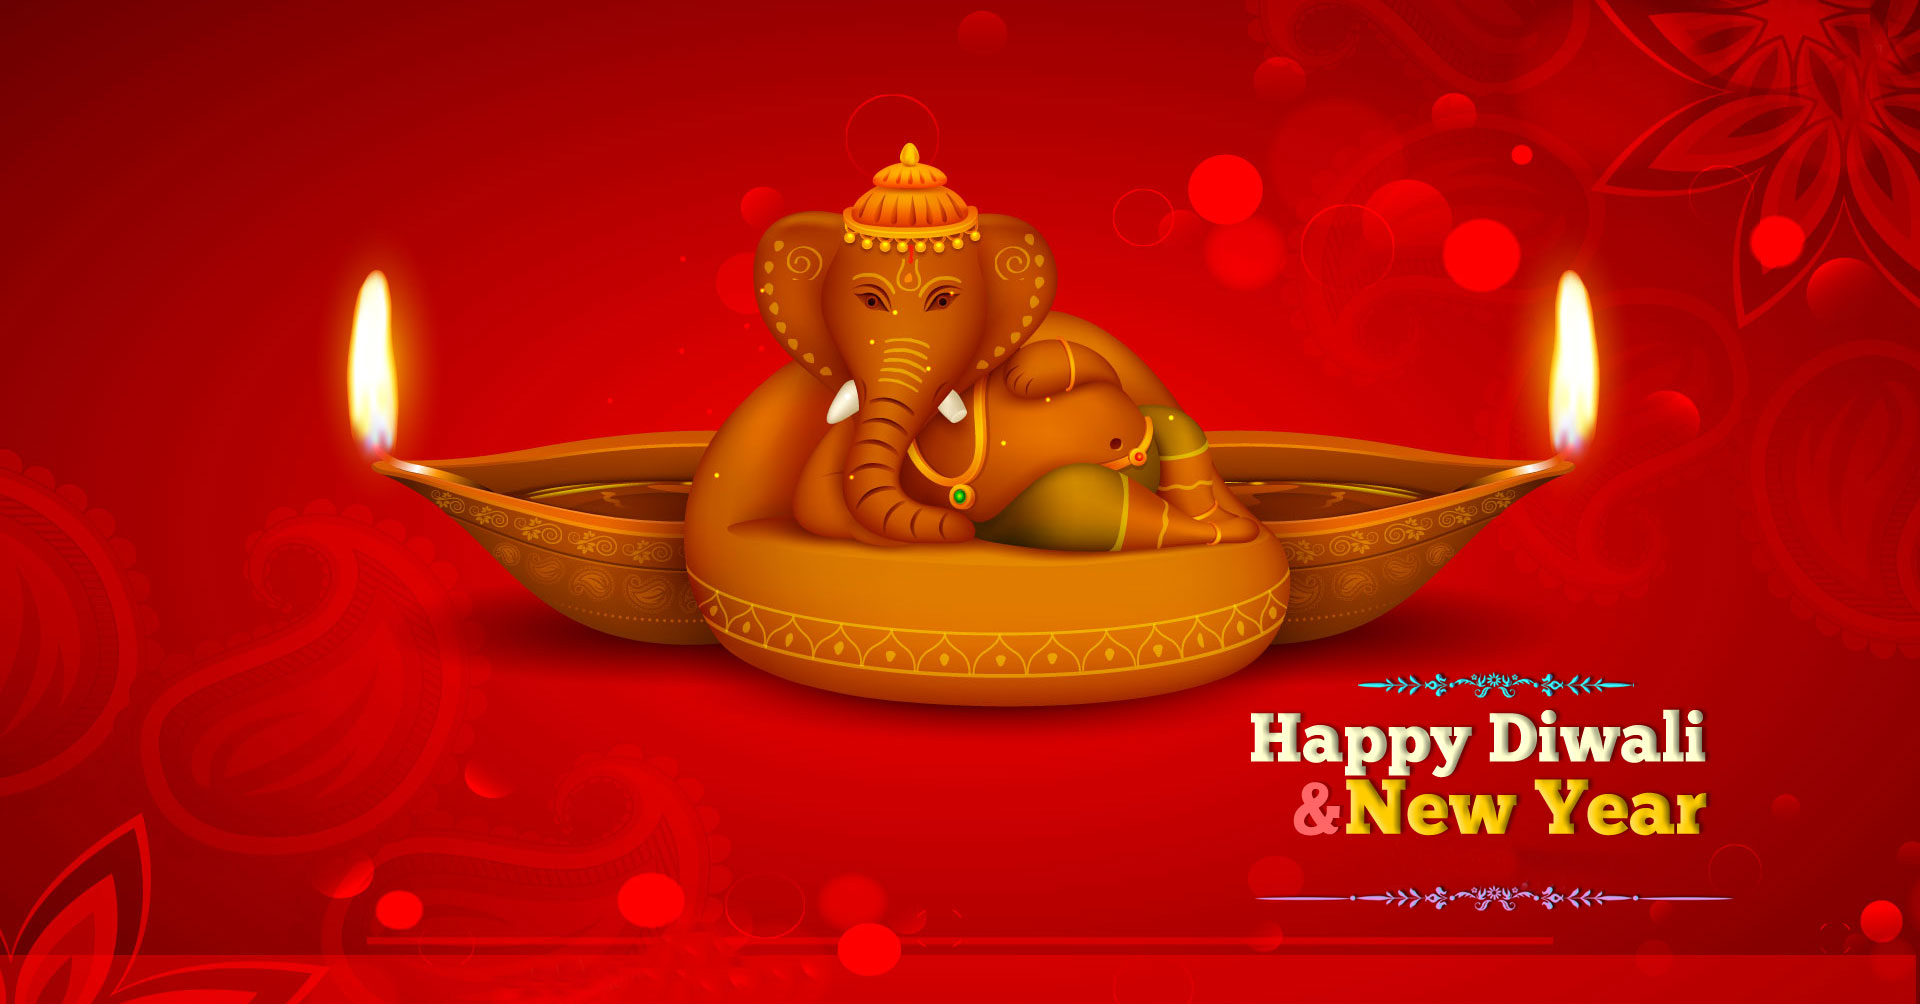 Happy Diwali And New Year Wallpapers: Download Happy Diwali And New Year Wallpapers Gallery